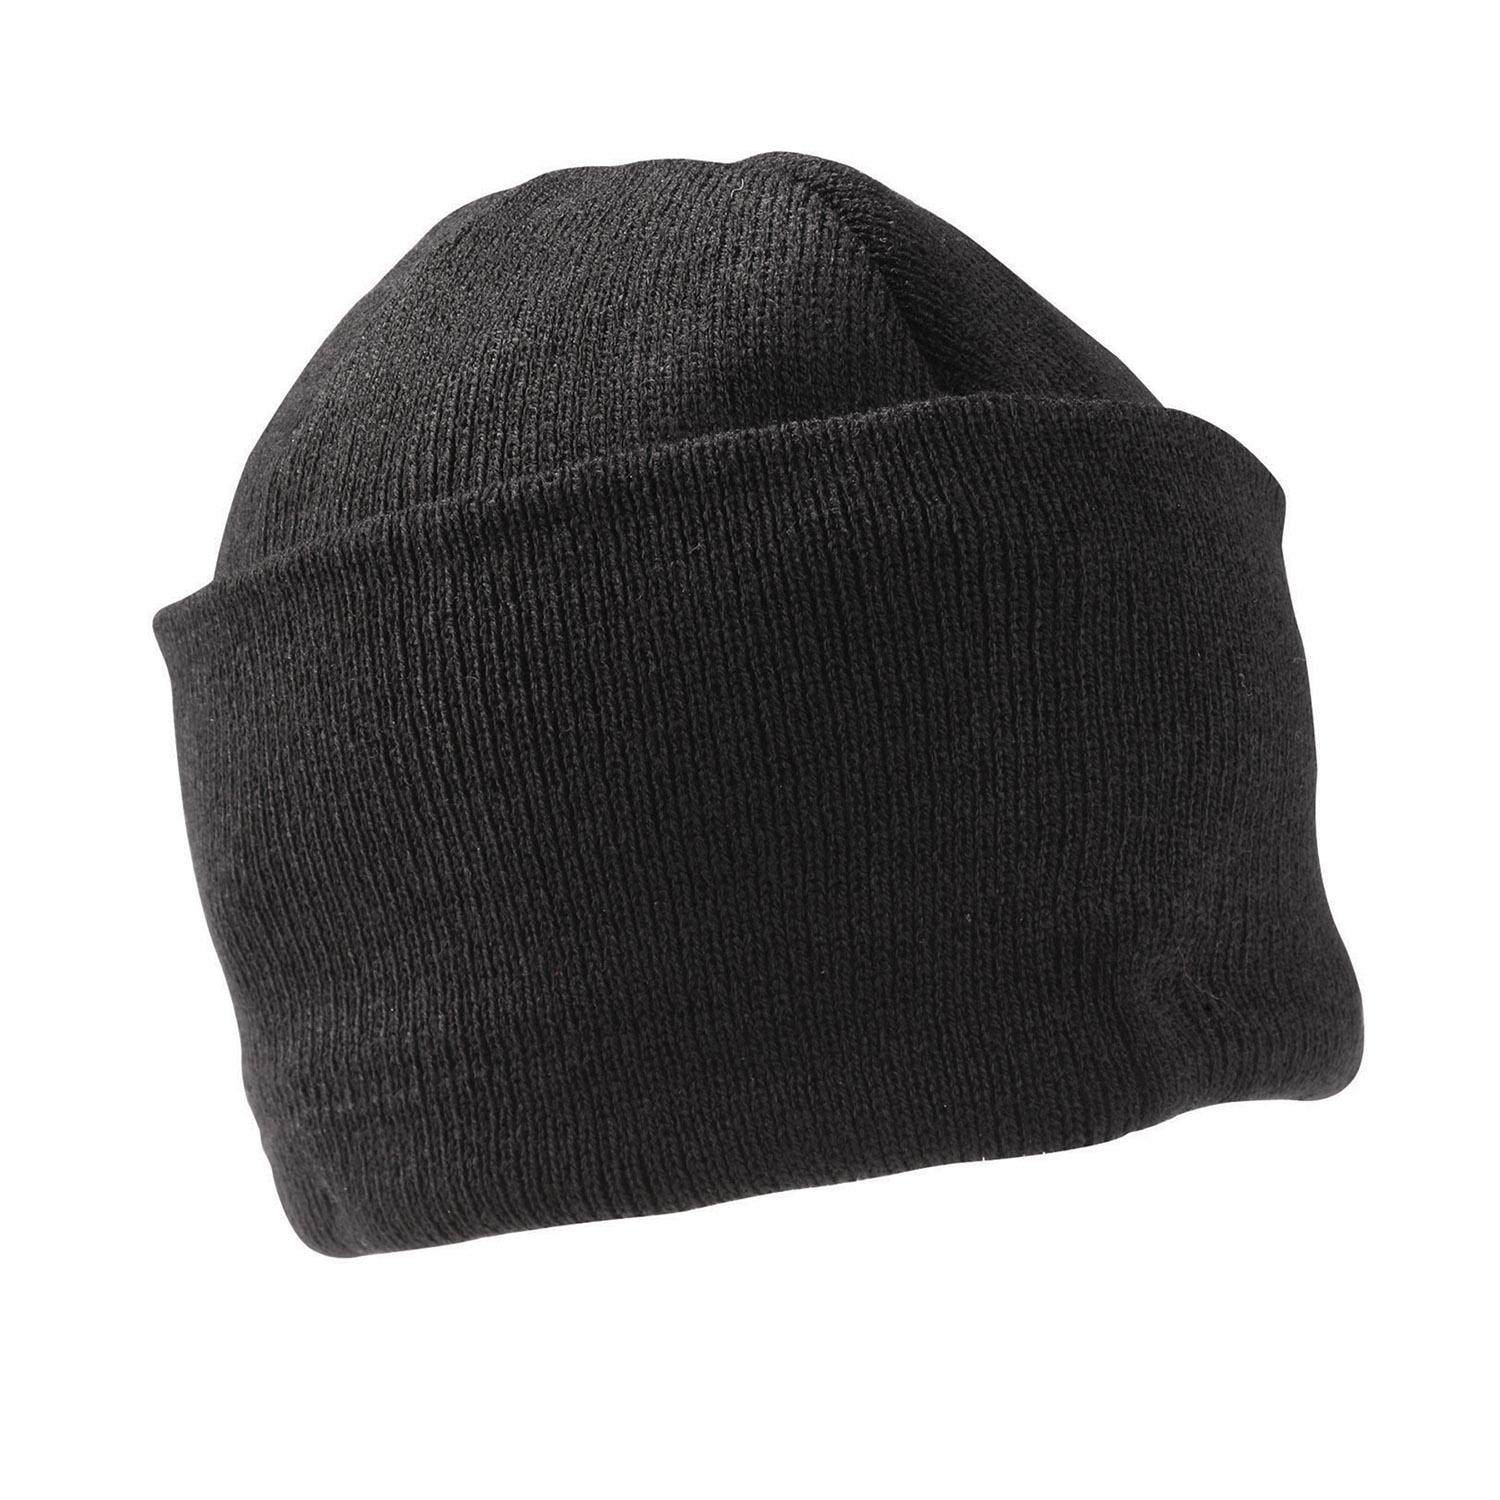 1c84f6a2a4f Galls Classic Style Watch Cap with Thinsulate